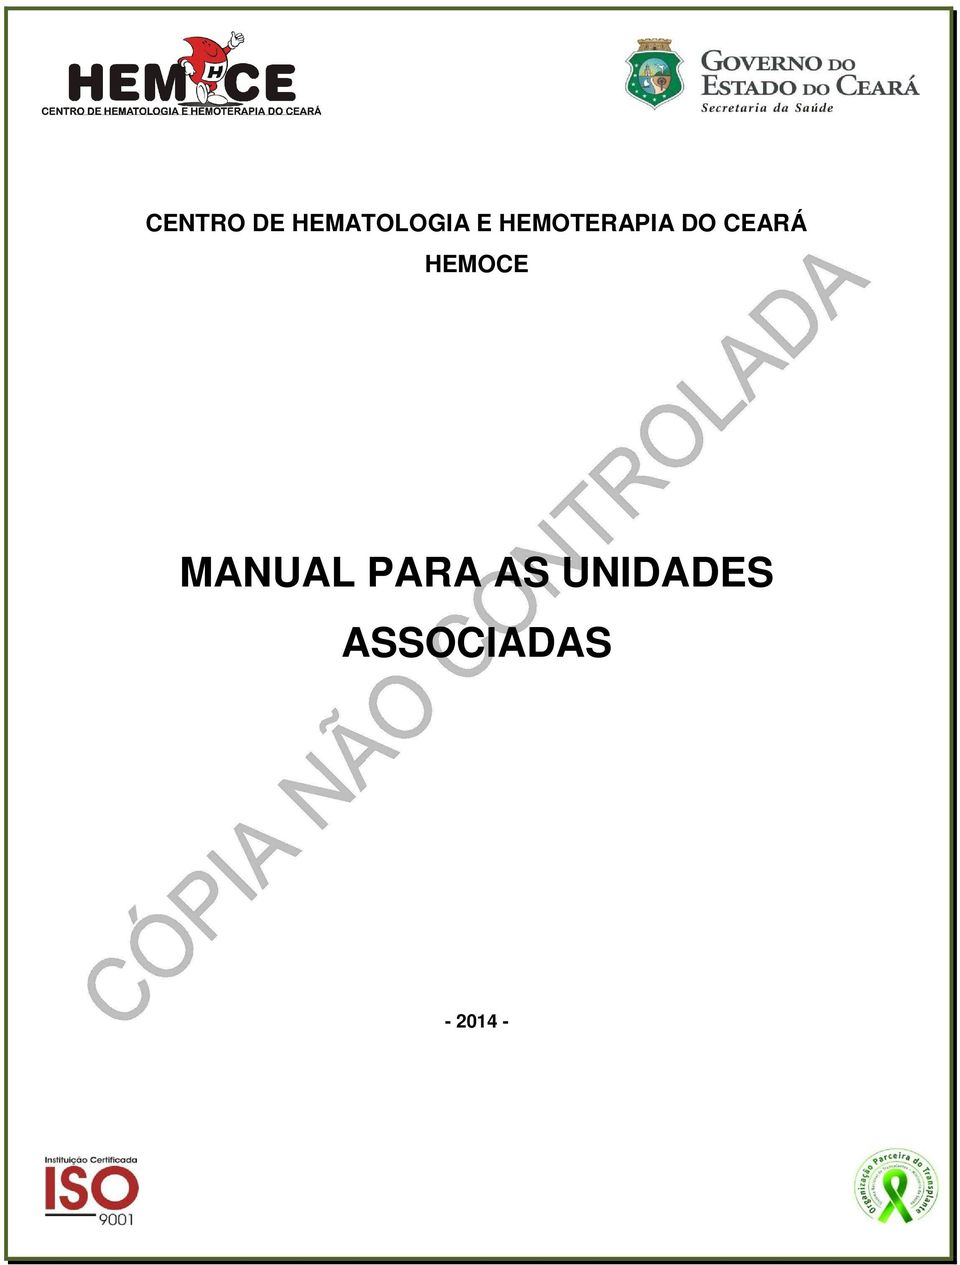 HEMOCE MANUAL PARA AS